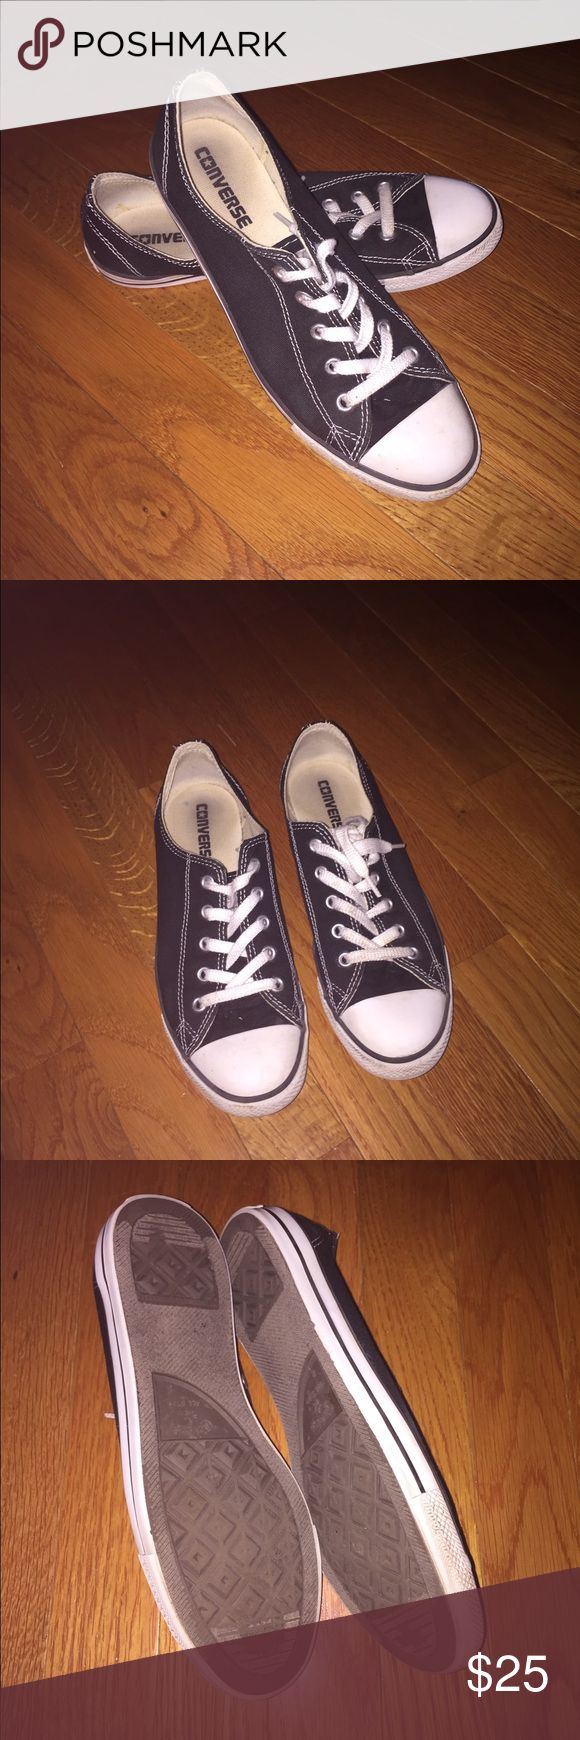 Converse Slim Ox Women's size 8 converse all star. These are the slim version. Dainty and classic! Excellent condition Converse Shoes Sneakers